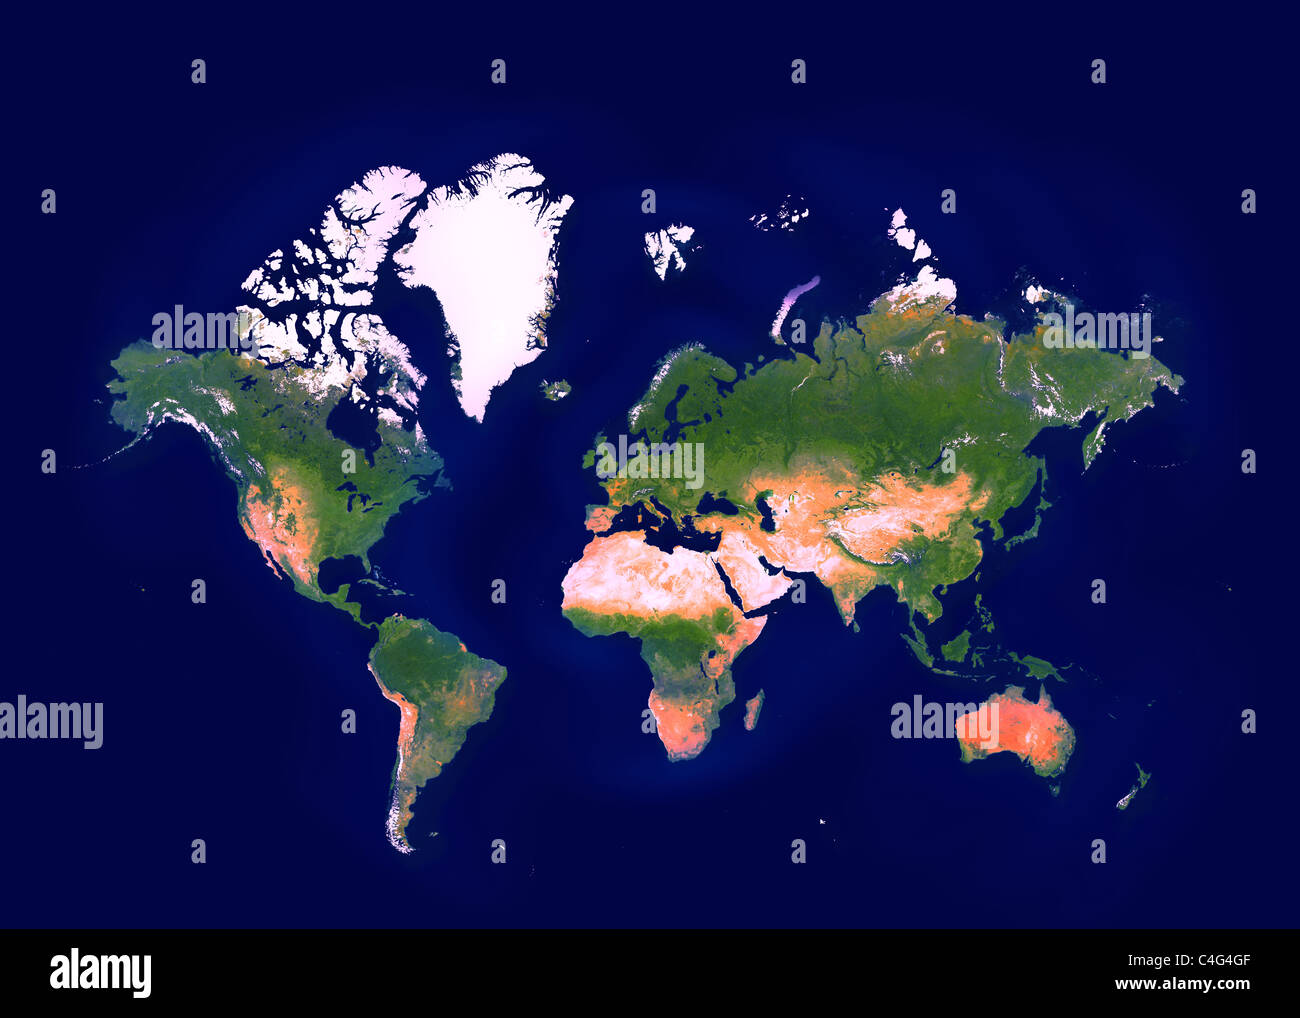 World map showing all continents - Stock Image